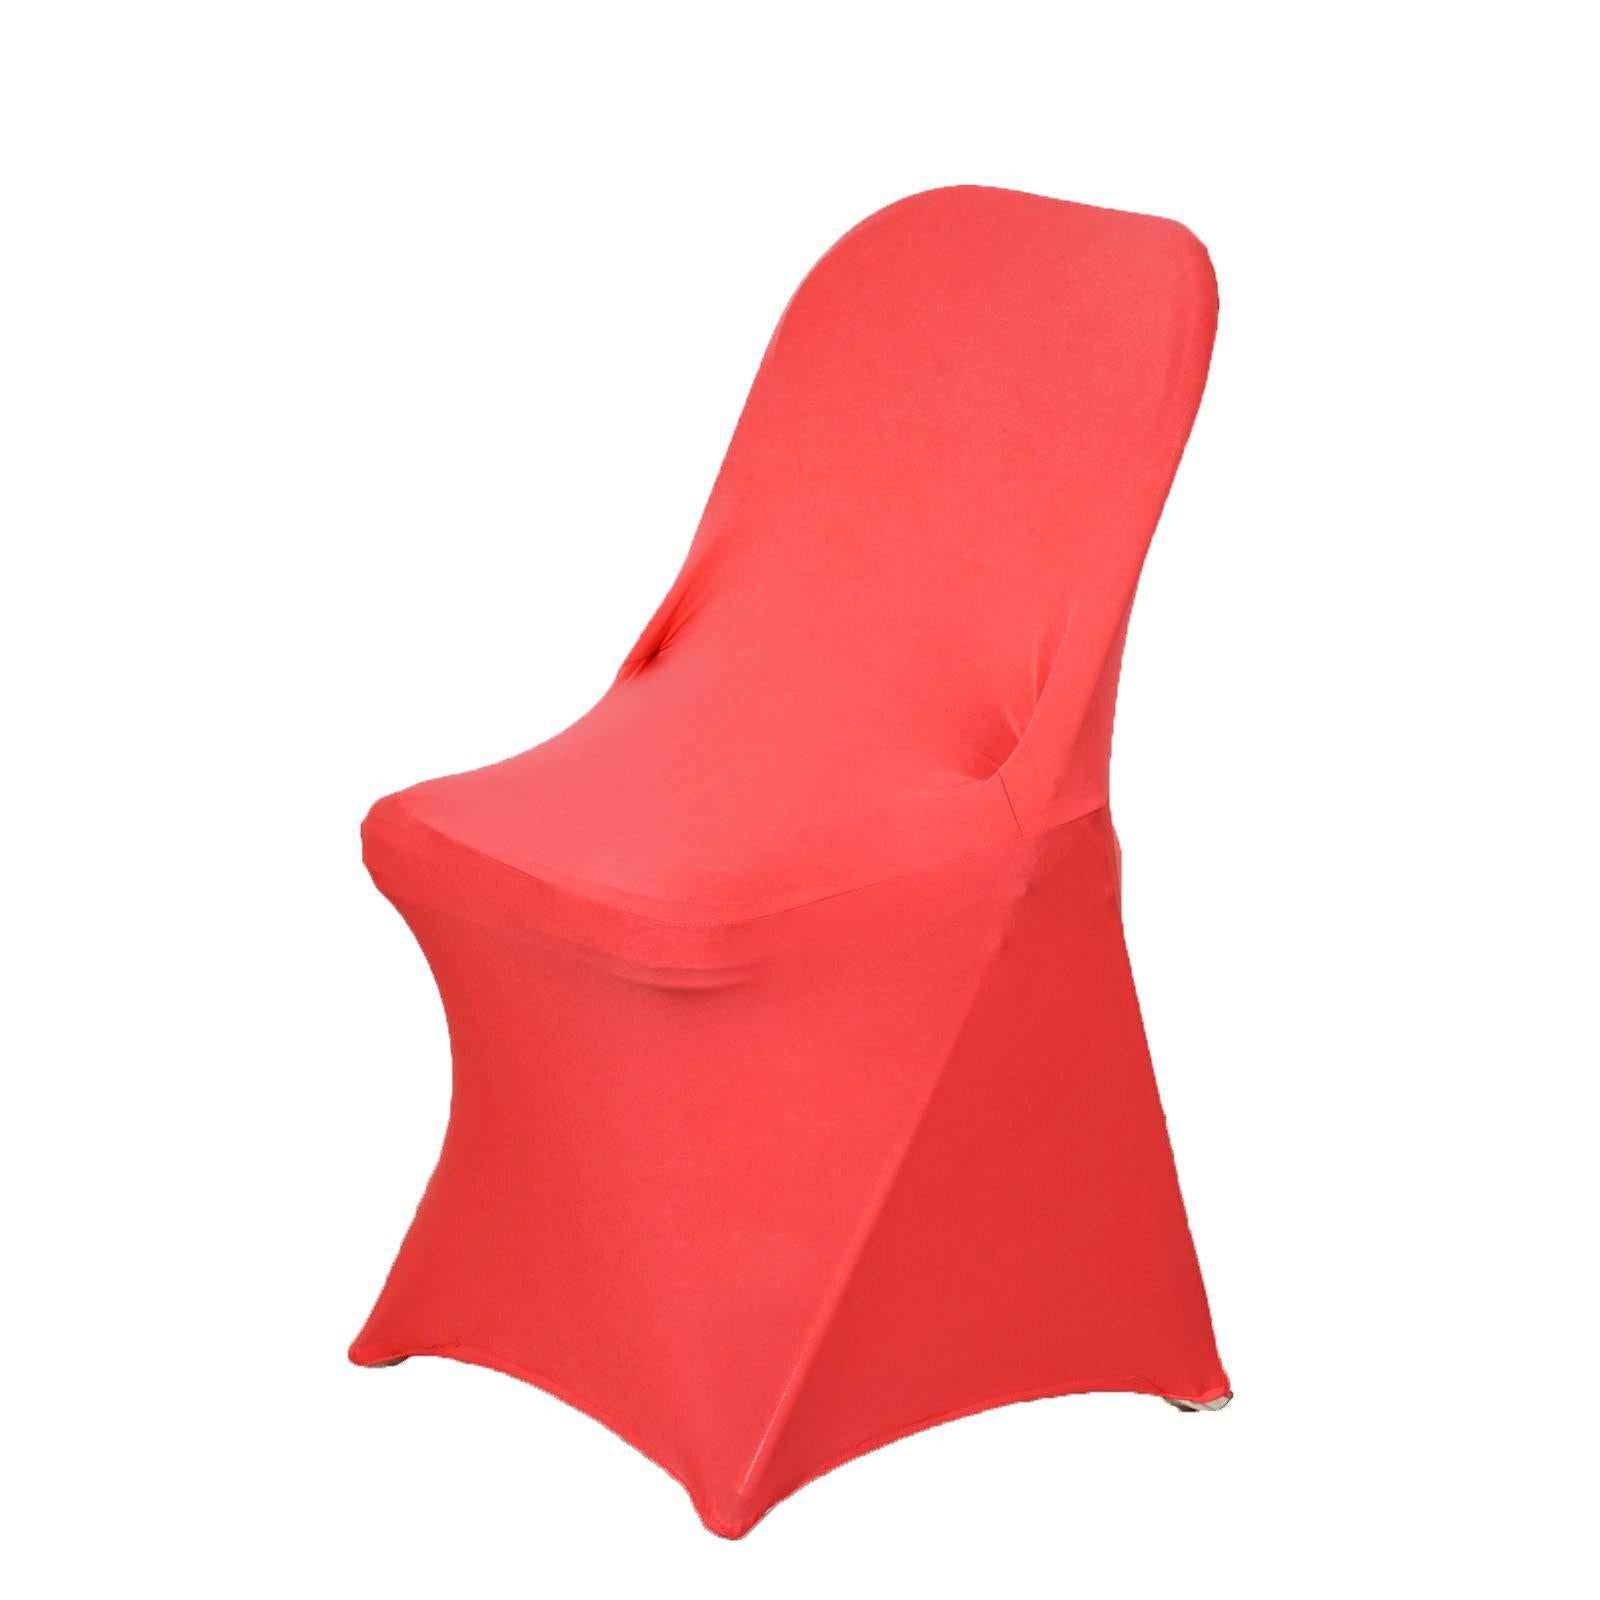 Chair Covers for Folding Chair Spandex Coral